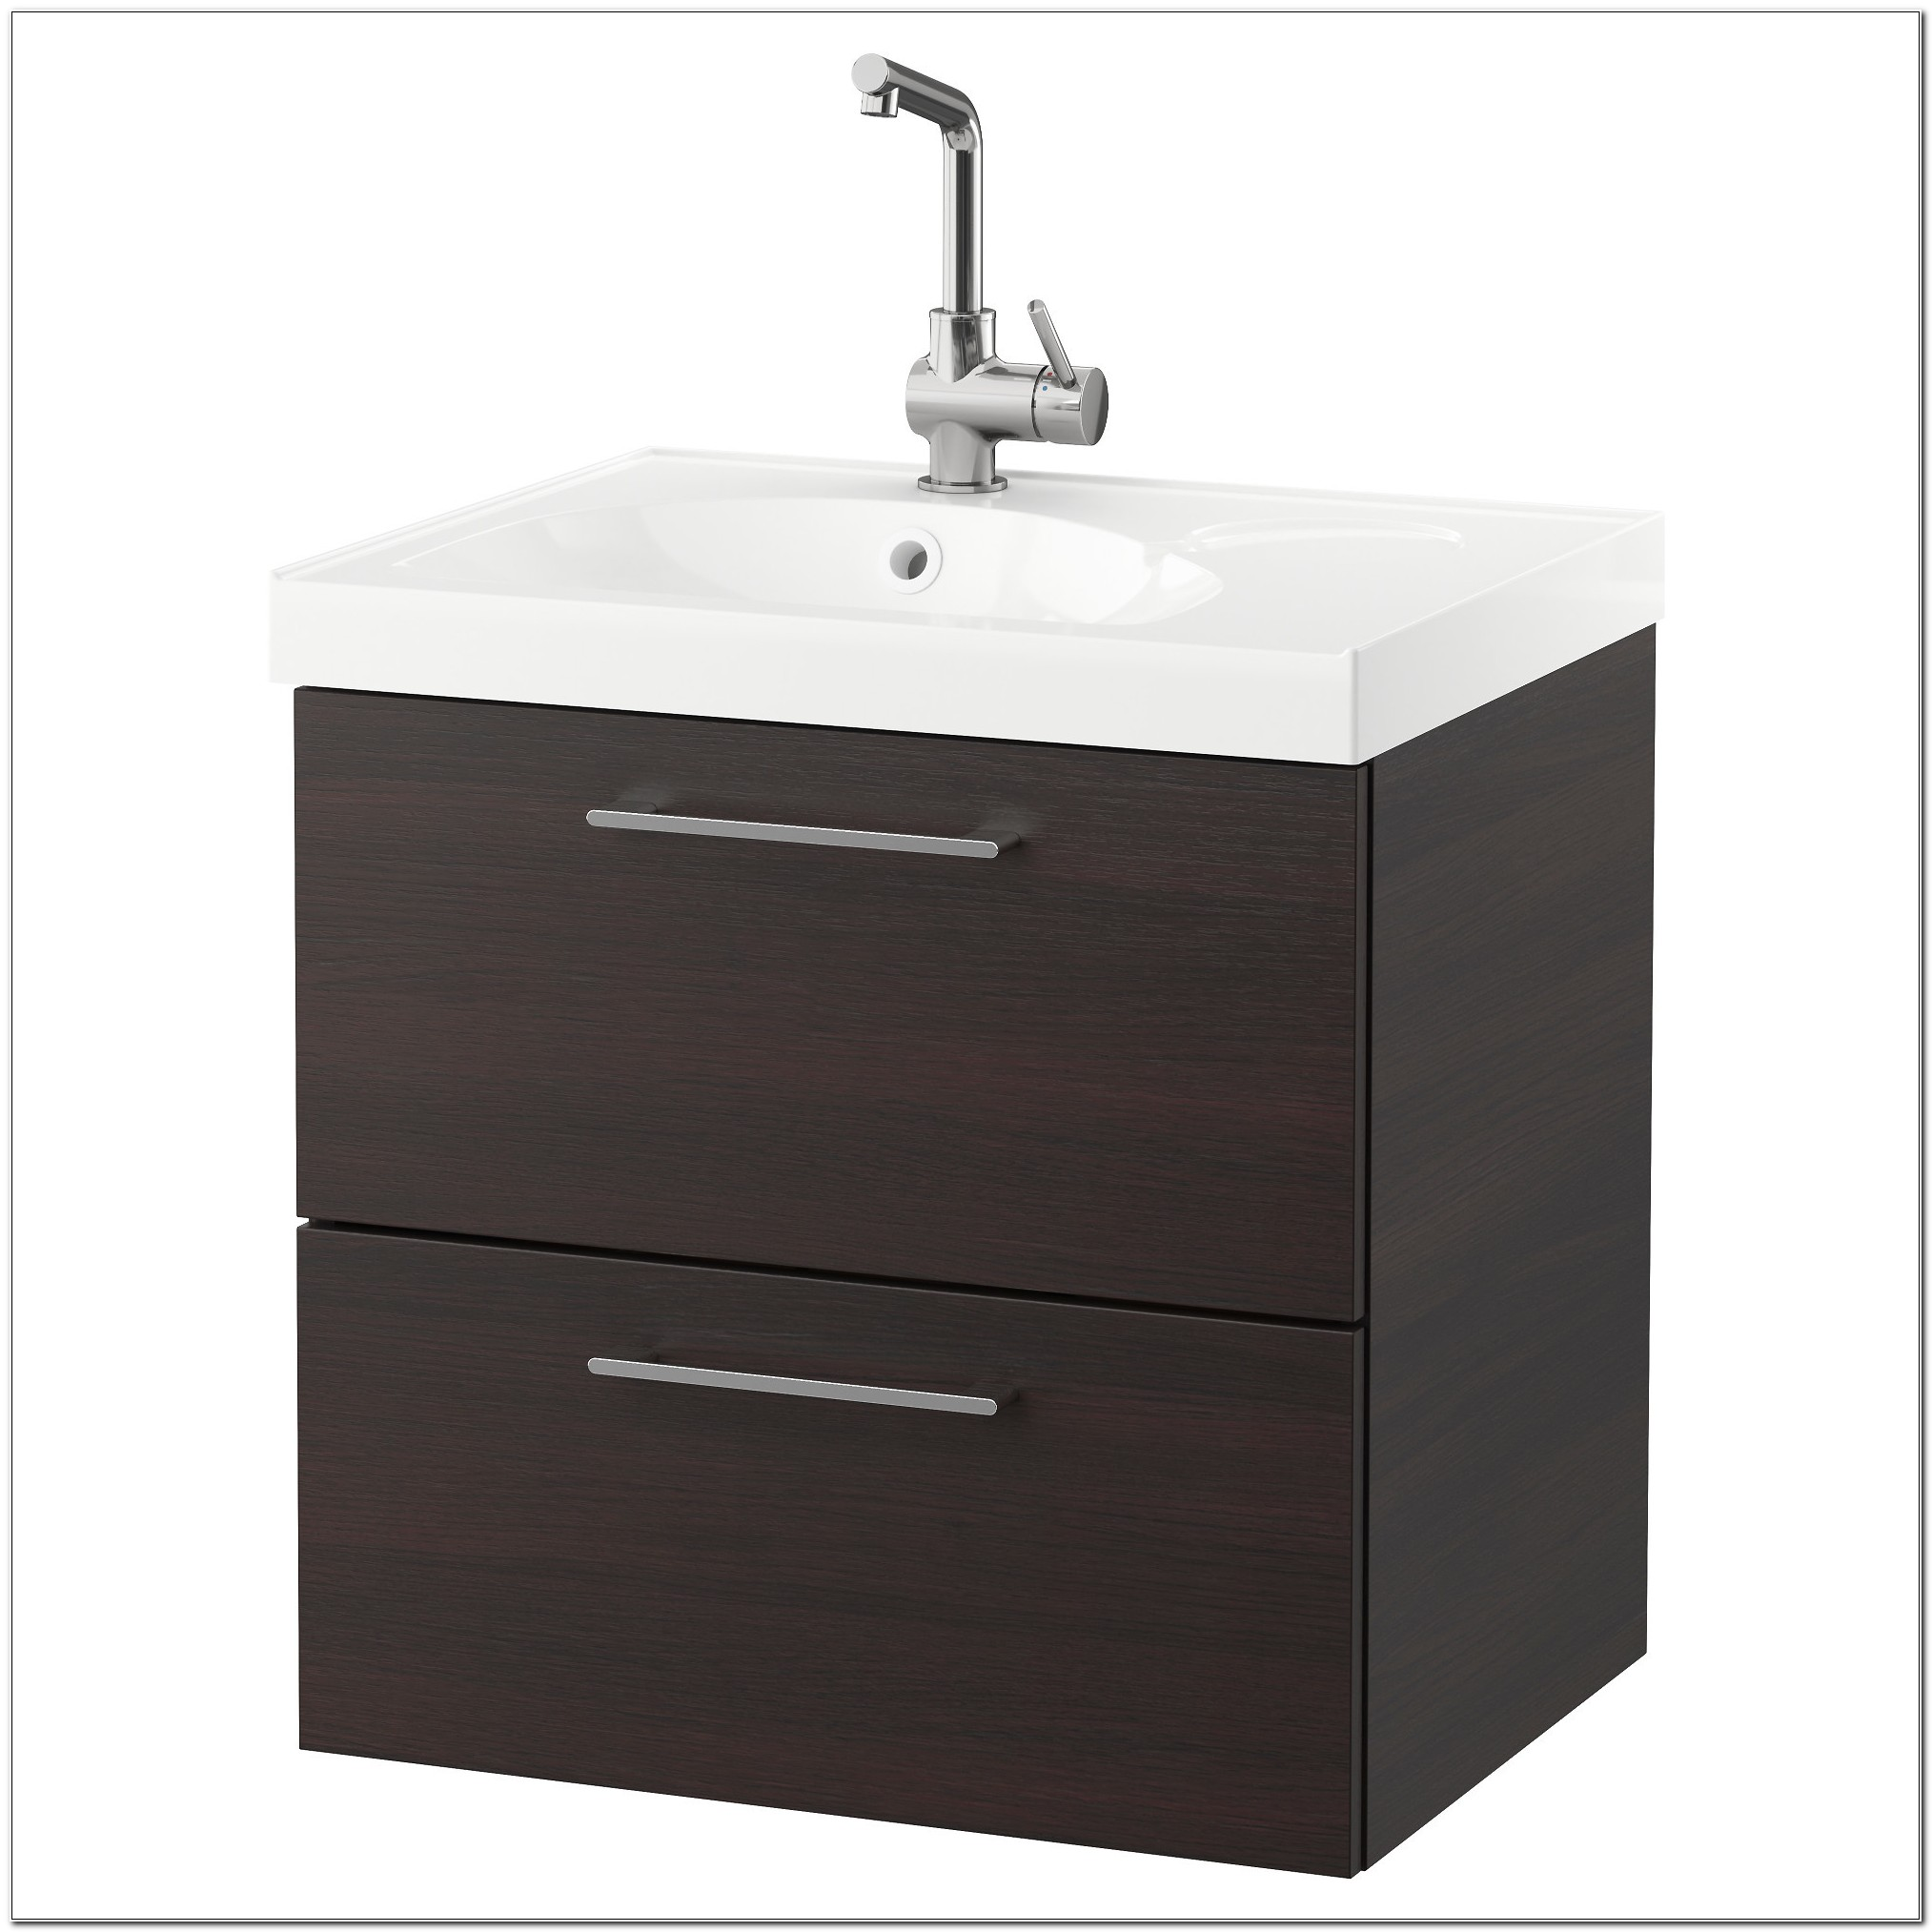 24 Bathroom Sink Base Cabinet